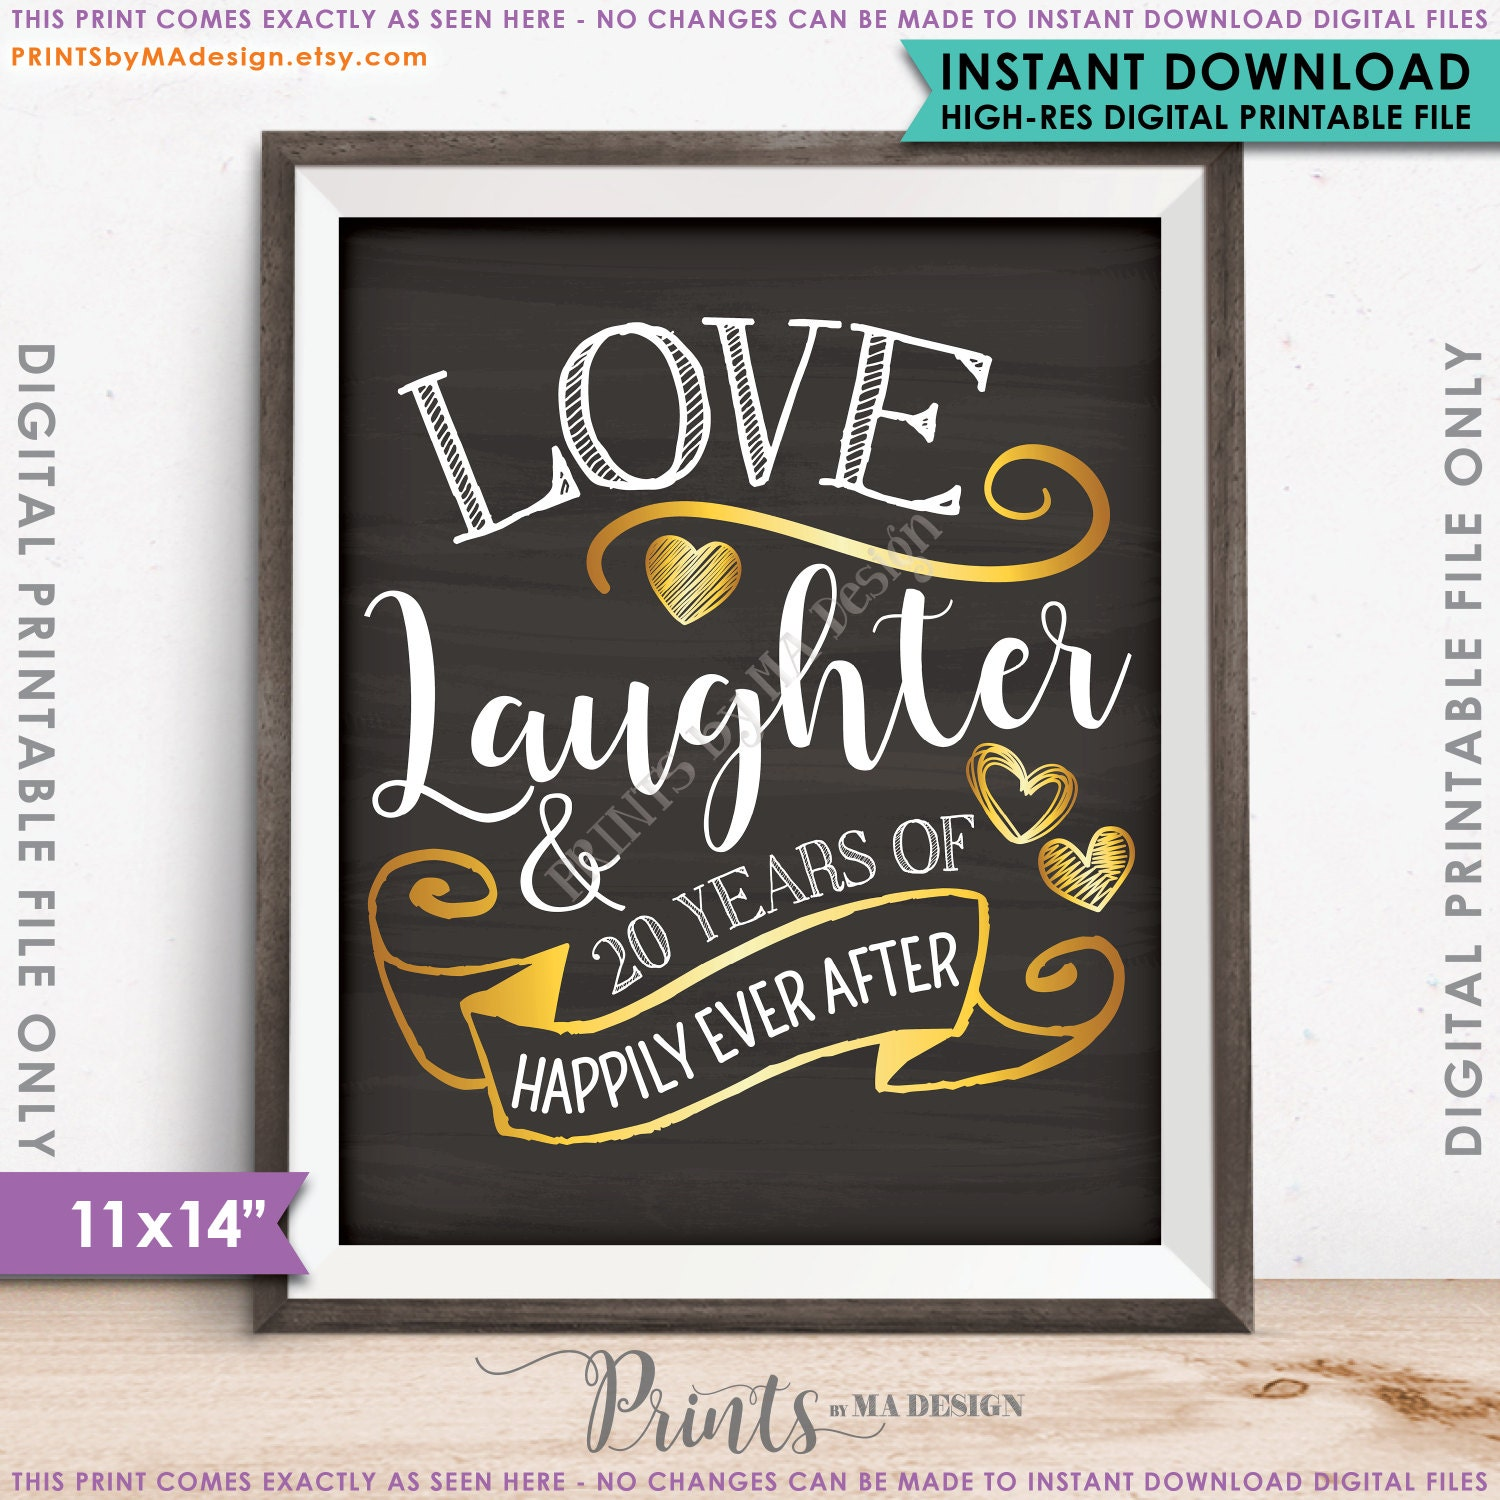 20th anniversary gift love laughter happily ever after 20 years of